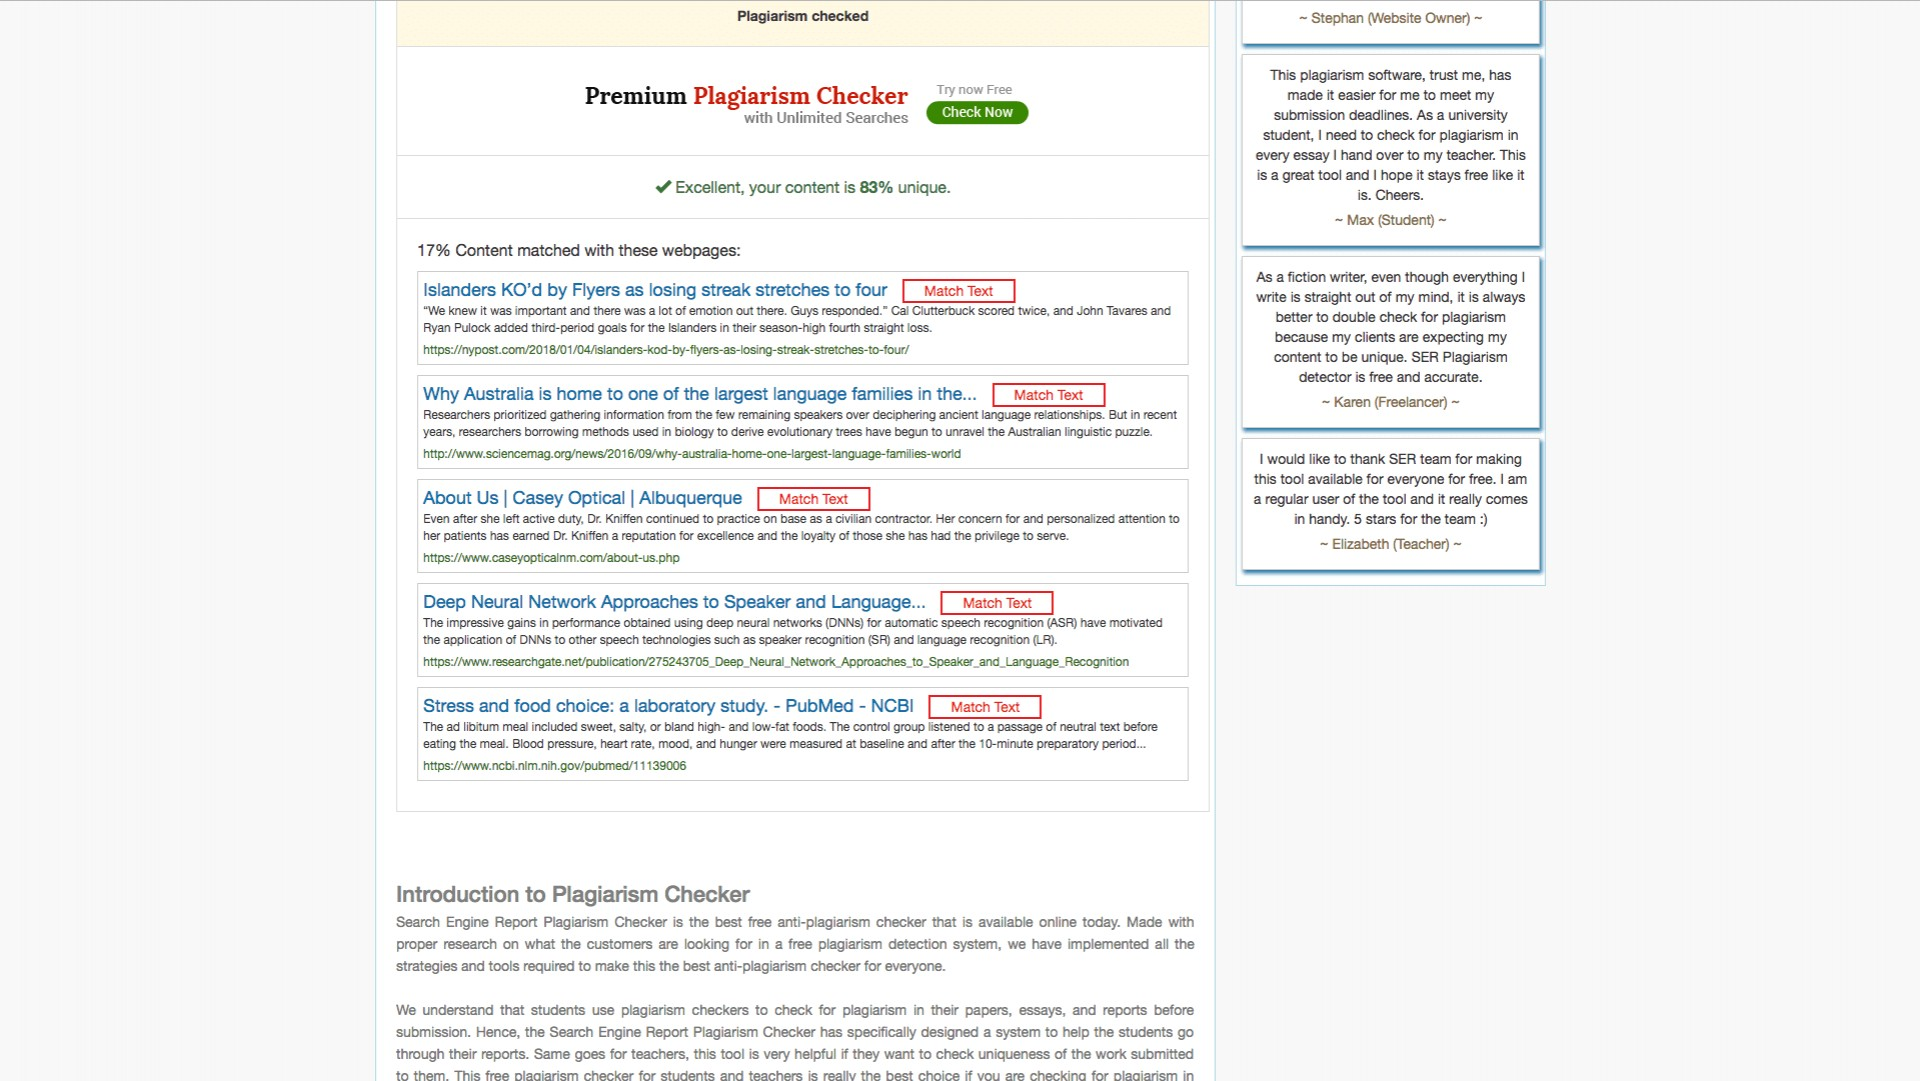 017 Searchenginereports Free Plagiarism Checker For Students Online Research Unique Turnitin Check With Percentage Software 1920